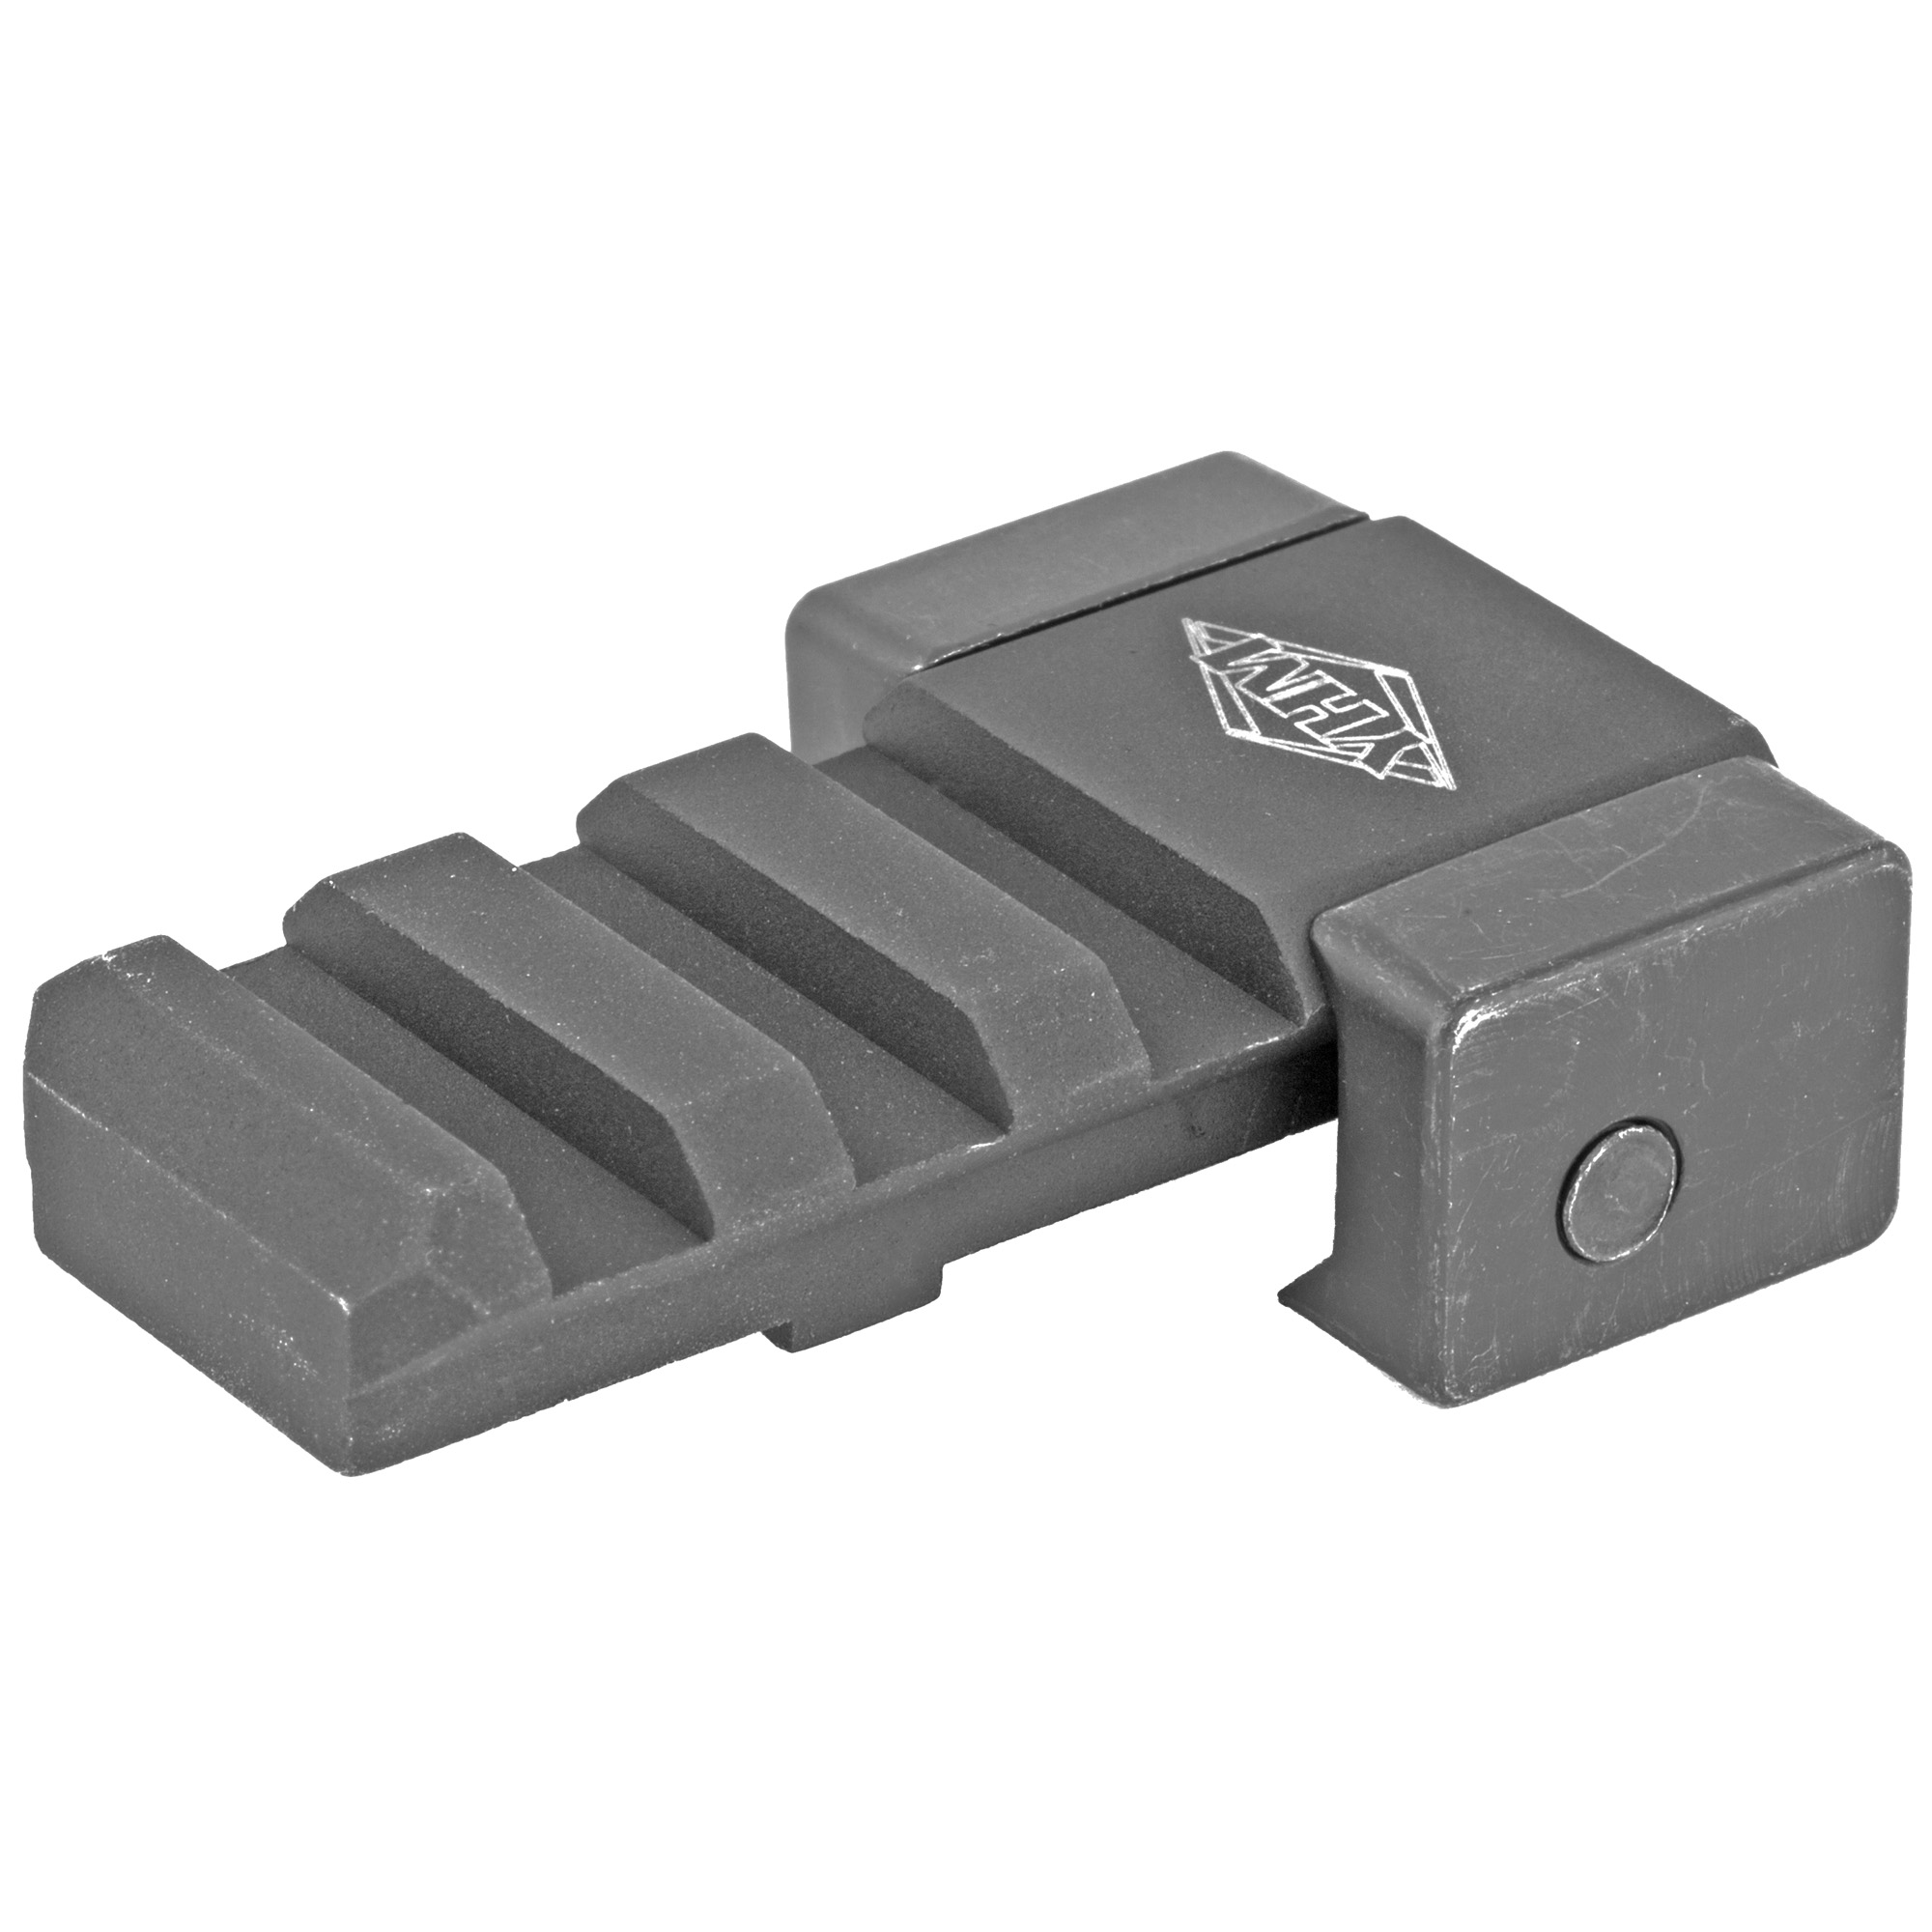 This riser allows you to use a same plane front sight on any YHM railed gas block. Perfect for use with their new Q.D.S.(R) same plane sight system.